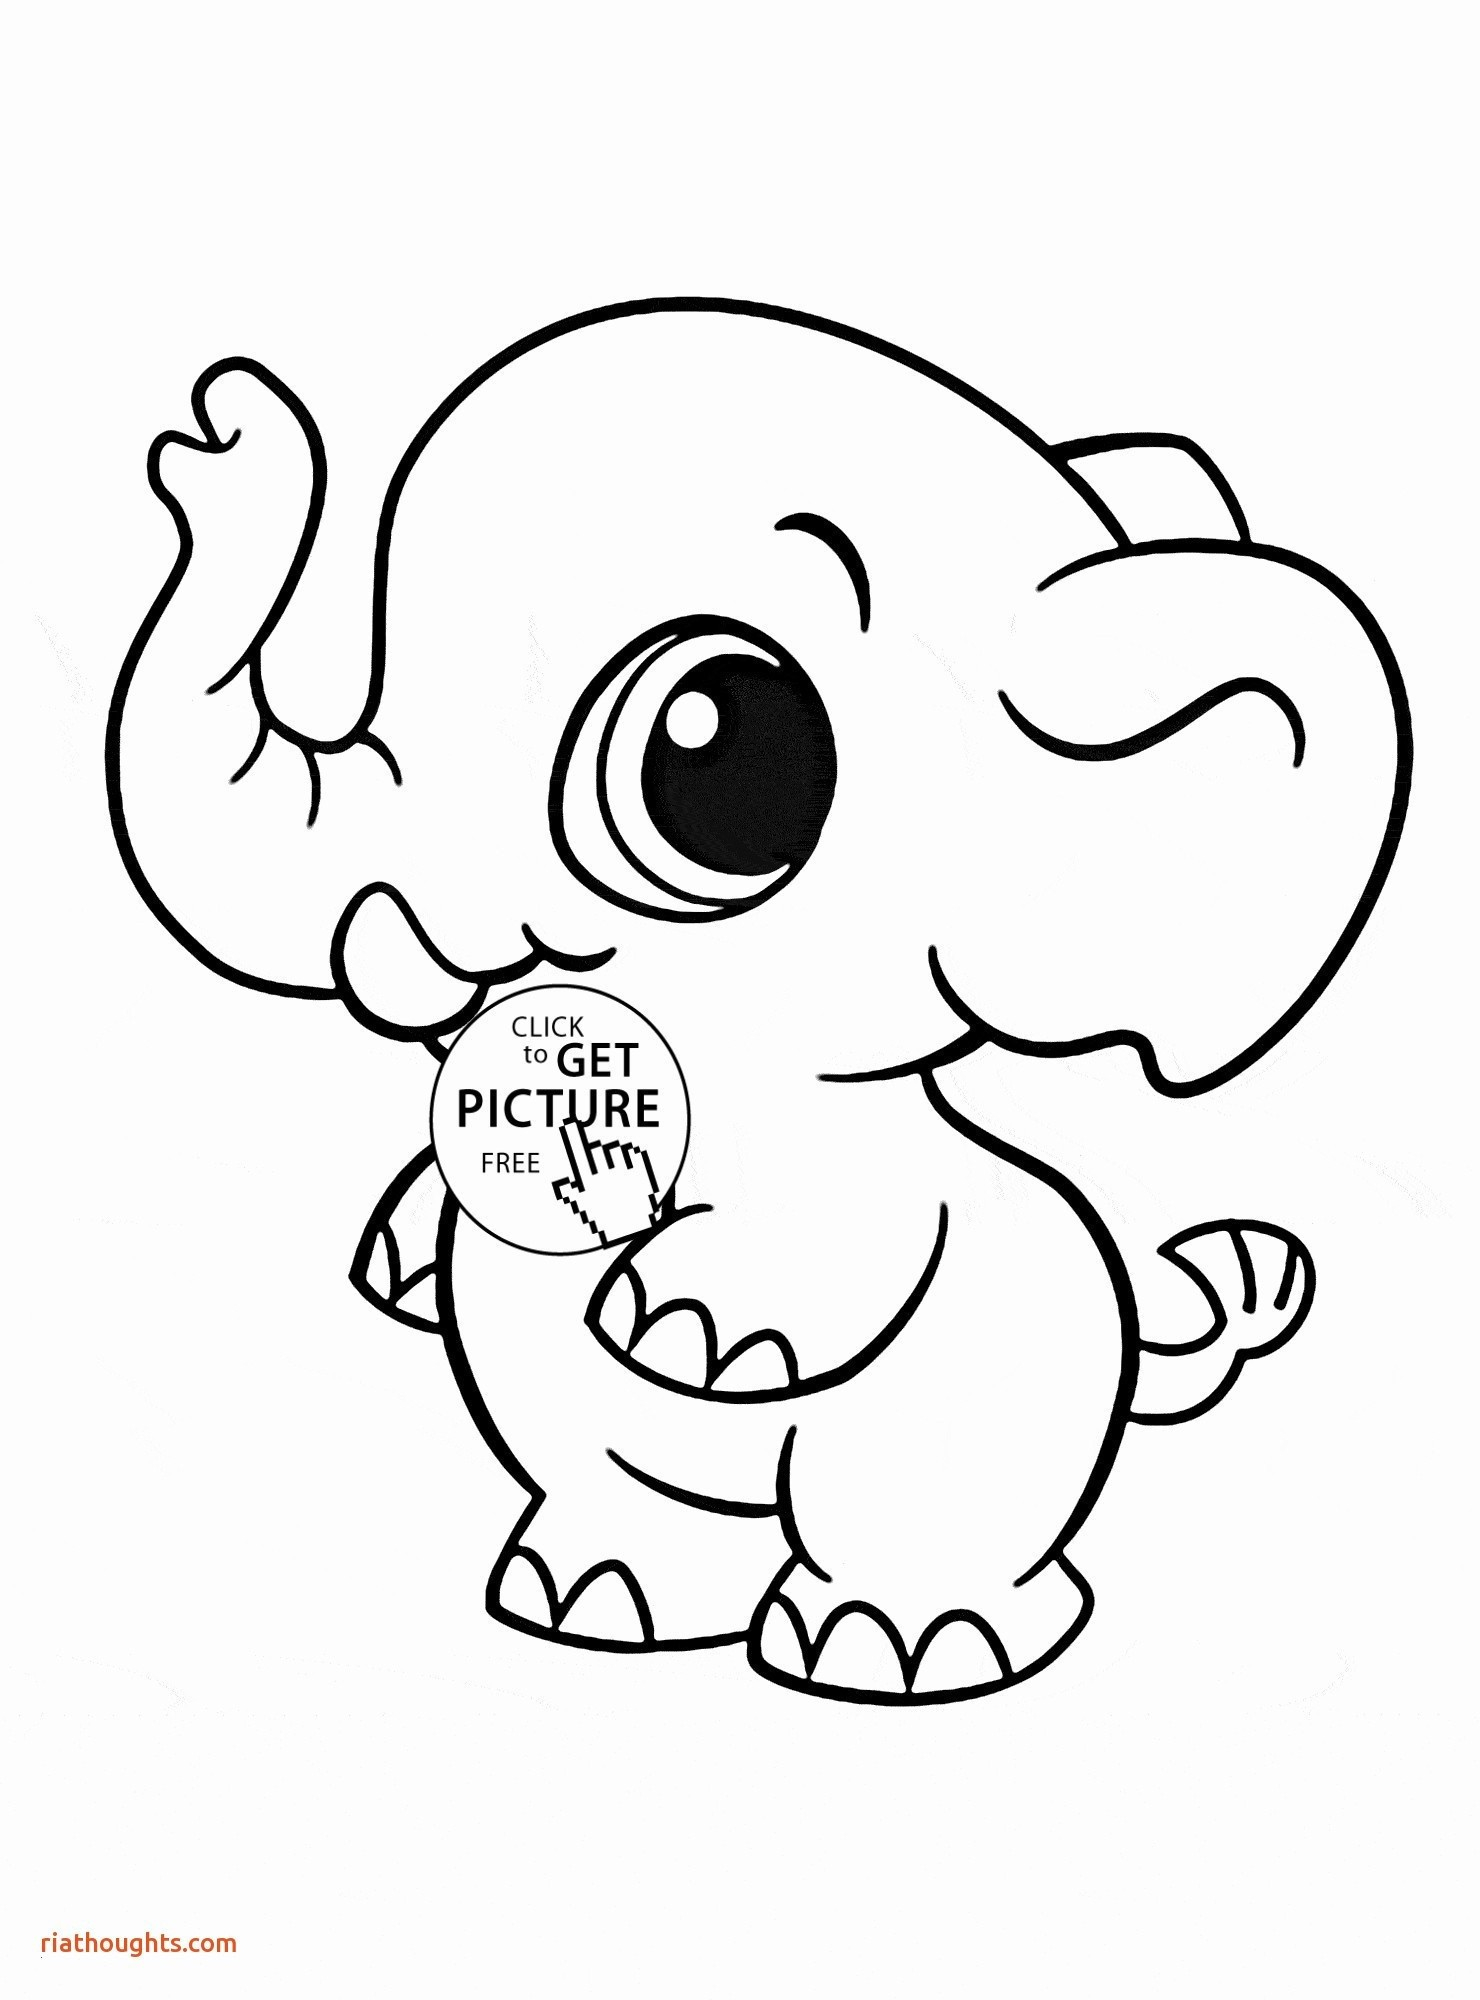 Zoo Animals Coloring Pages Sea Animal Coloring Pages Printable Free Unique Zoo Animals Coloring